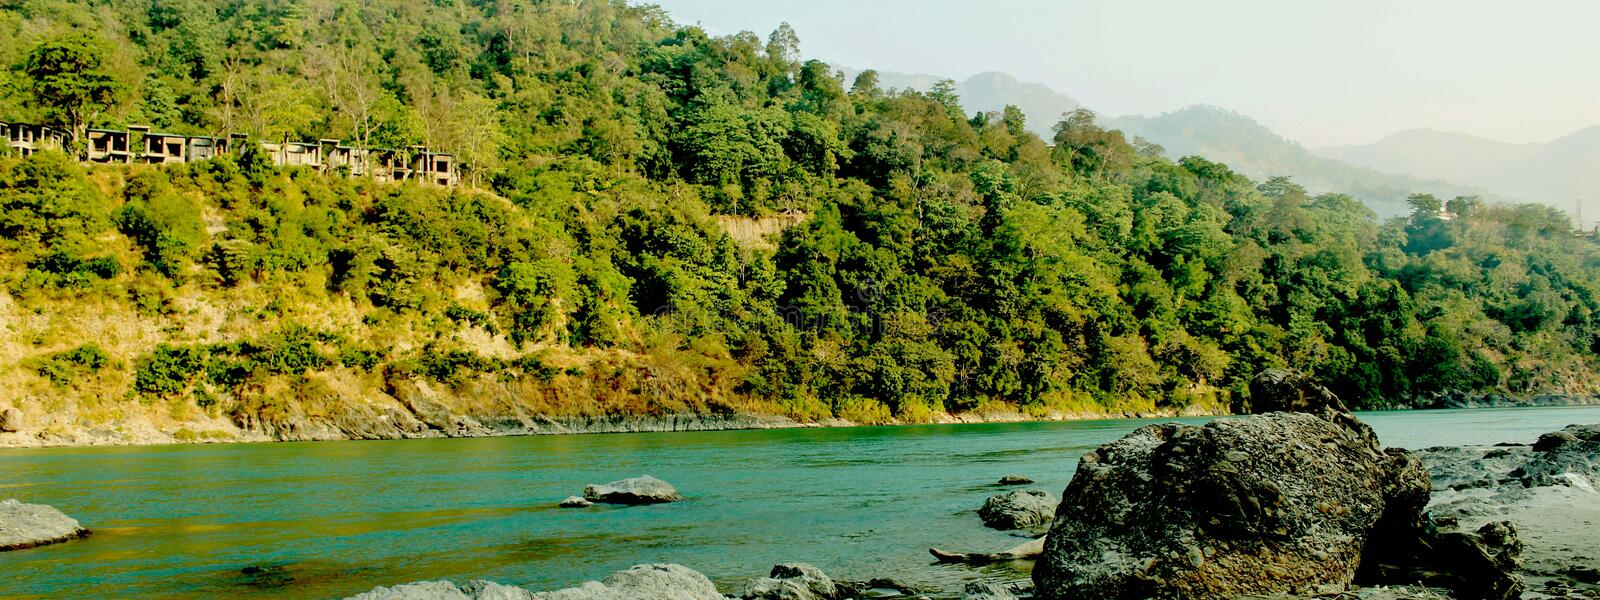 Natural Image. Rishikesh. Rishikesh, a most tranquil place in northern Uttarakhand, surrounded by hills and bisected by the wide and sluggish Ganges, is often stock photos